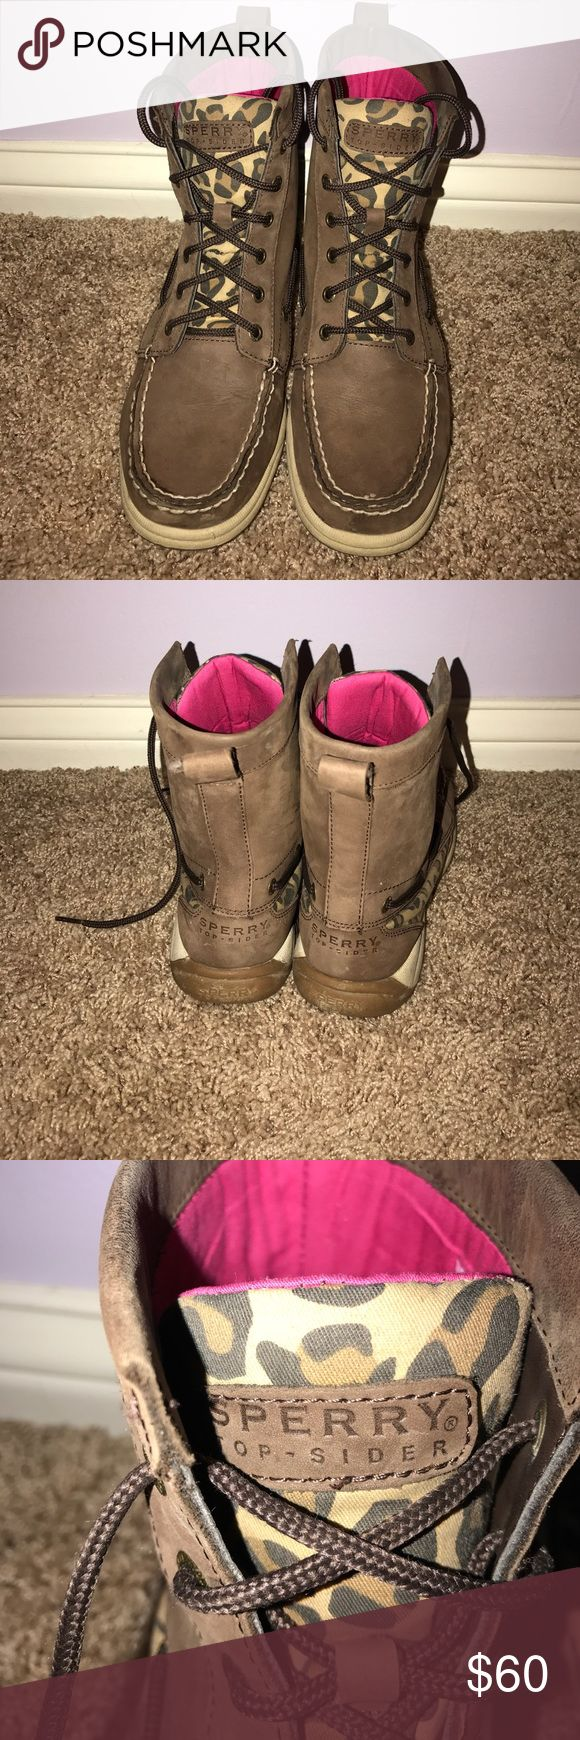 Sperry Top Sider Boots Super cute Sperry boots that are brown with cheetah print on the tongue. The inside of the shoe is hot pink. These boots work great for rainy days! Only worn a few times. Sperry Shoes Lace Up Boots